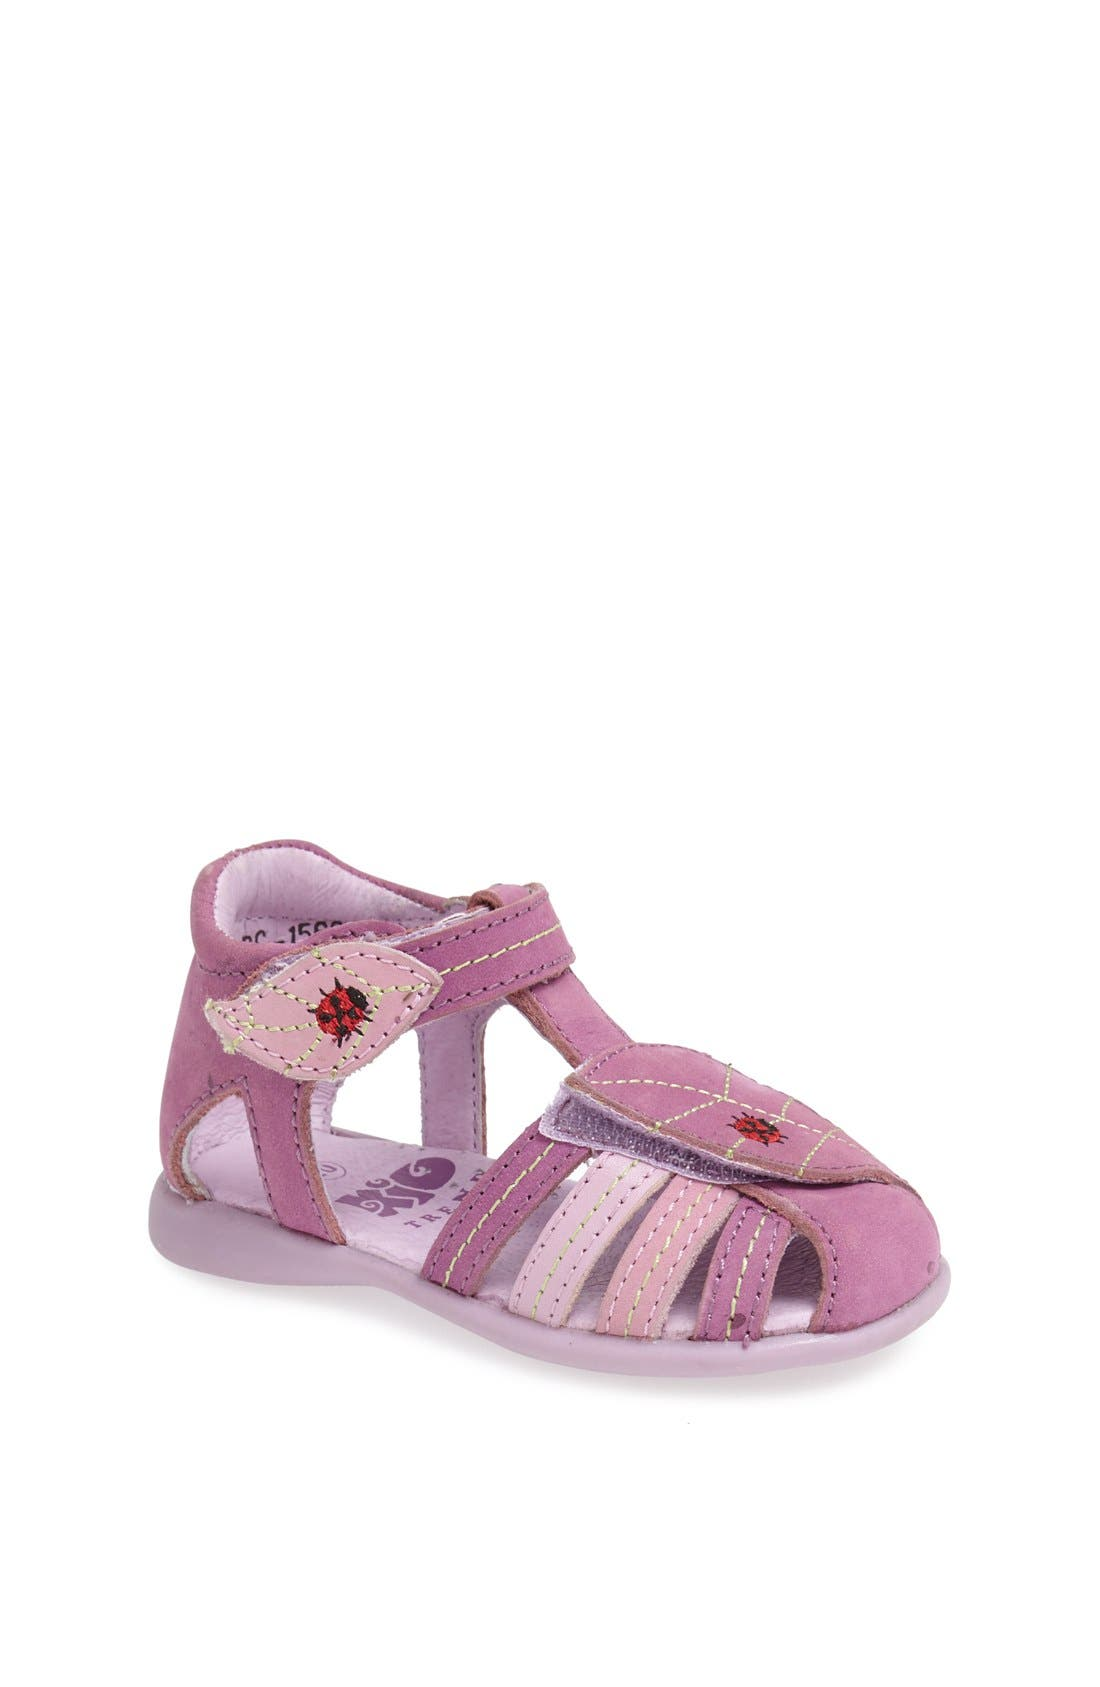 Alternate Image 1 Selected - Kio Trend 'Lena' Sandal (Baby, Walker & Toddler)